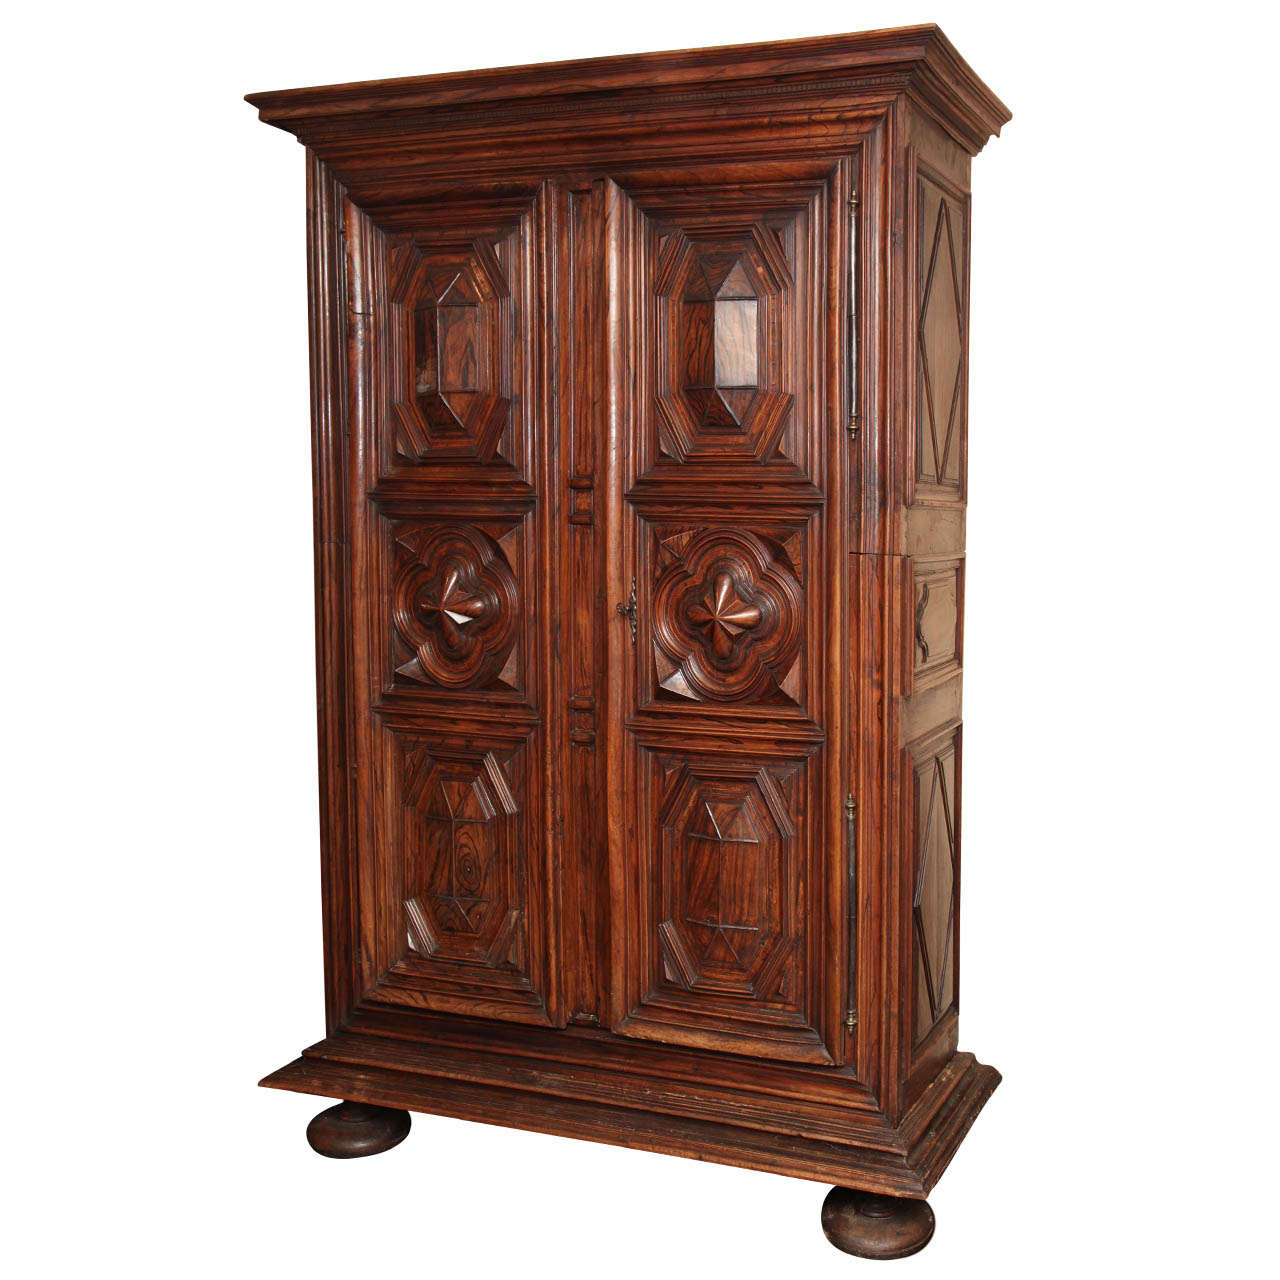 Late 18th Century French, Walnut and Simulated Walnut Armoire